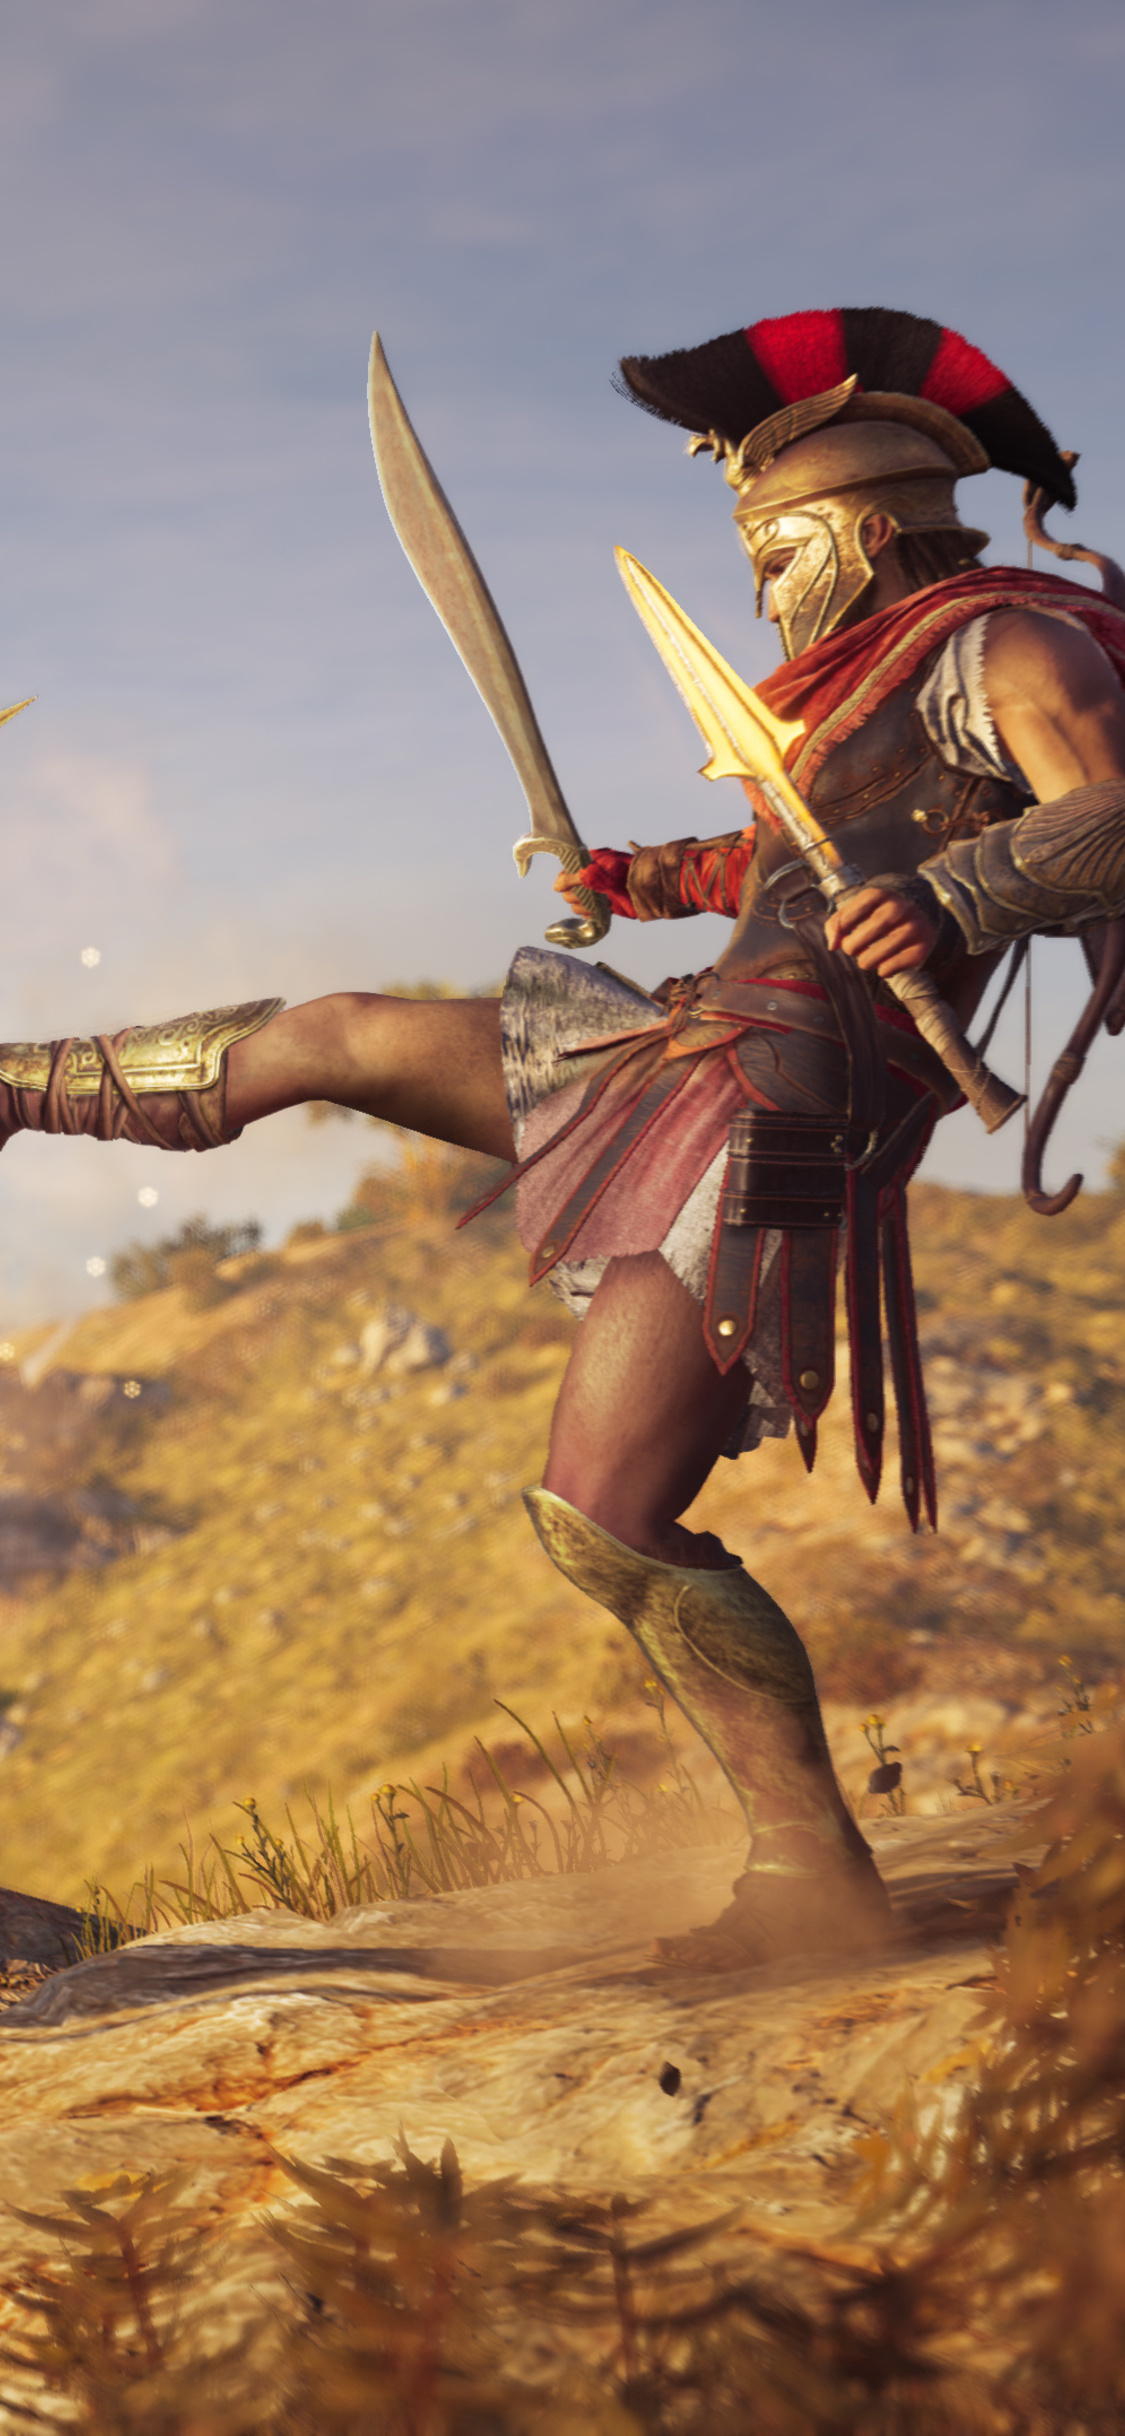 1125x2436 Assassins Creed Odyssey Iphone Xs Iphone 10 Iphone X Hd 4k